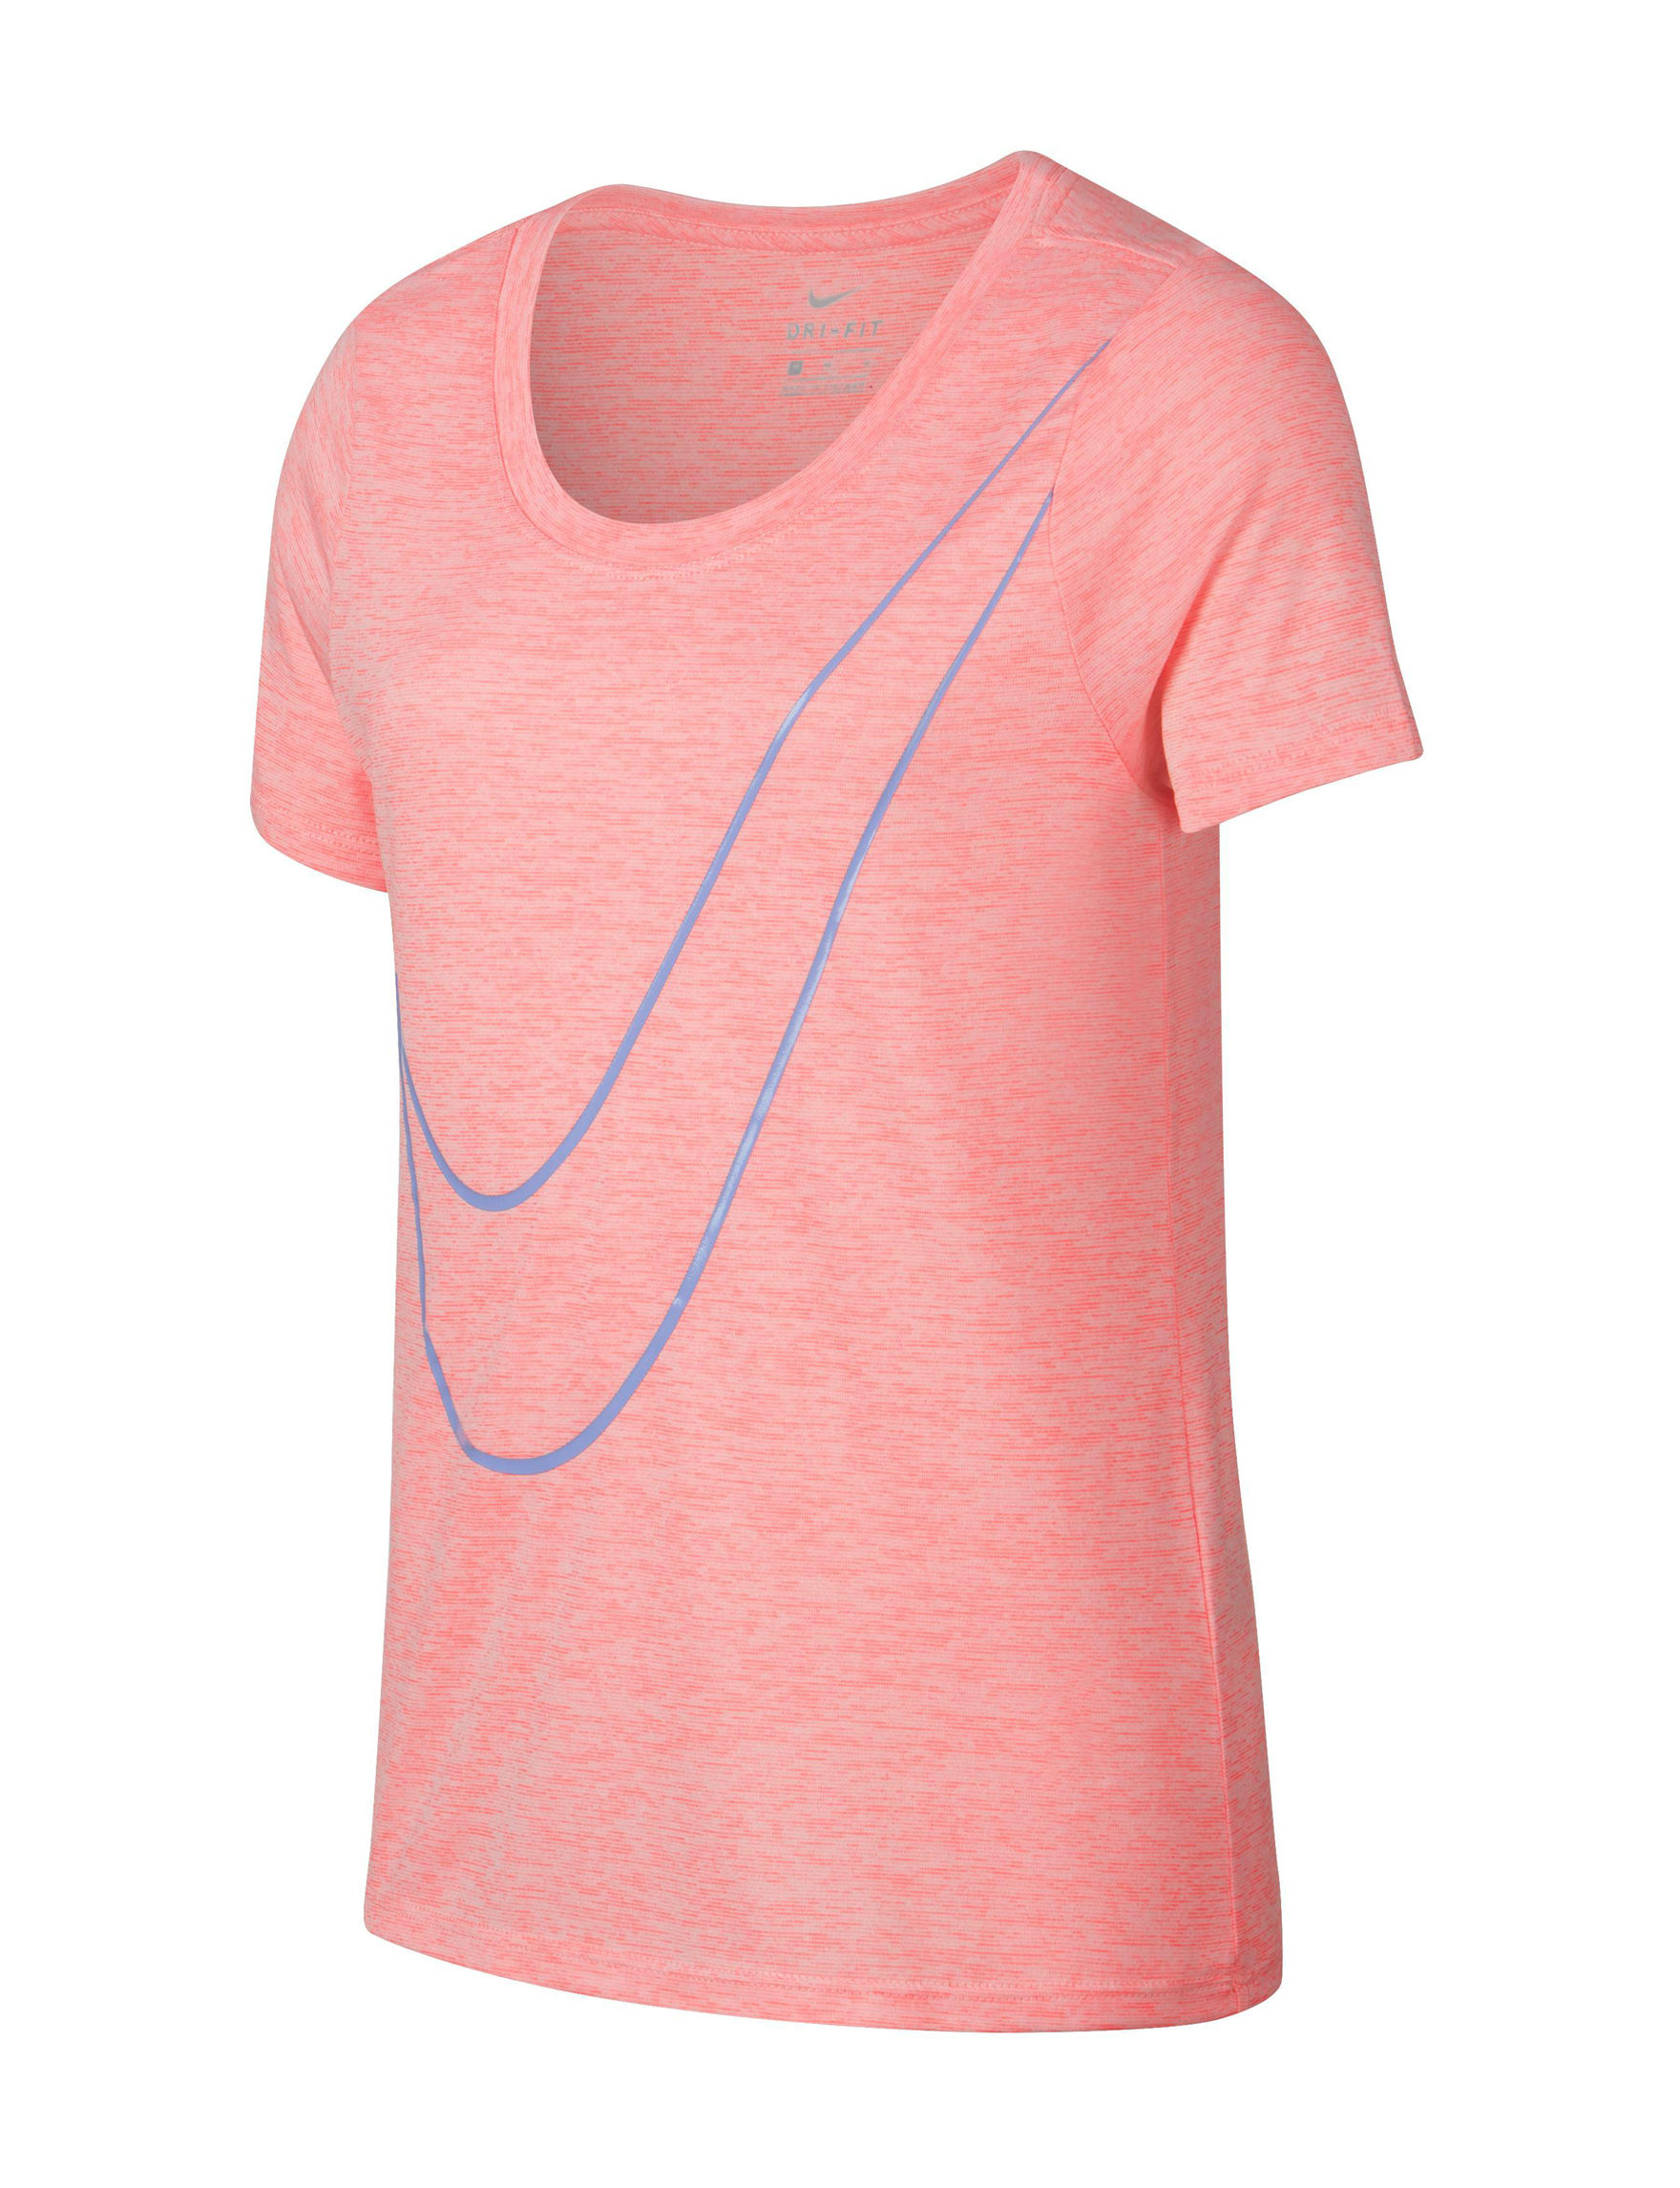 Nike Light Red Tees & Tanks